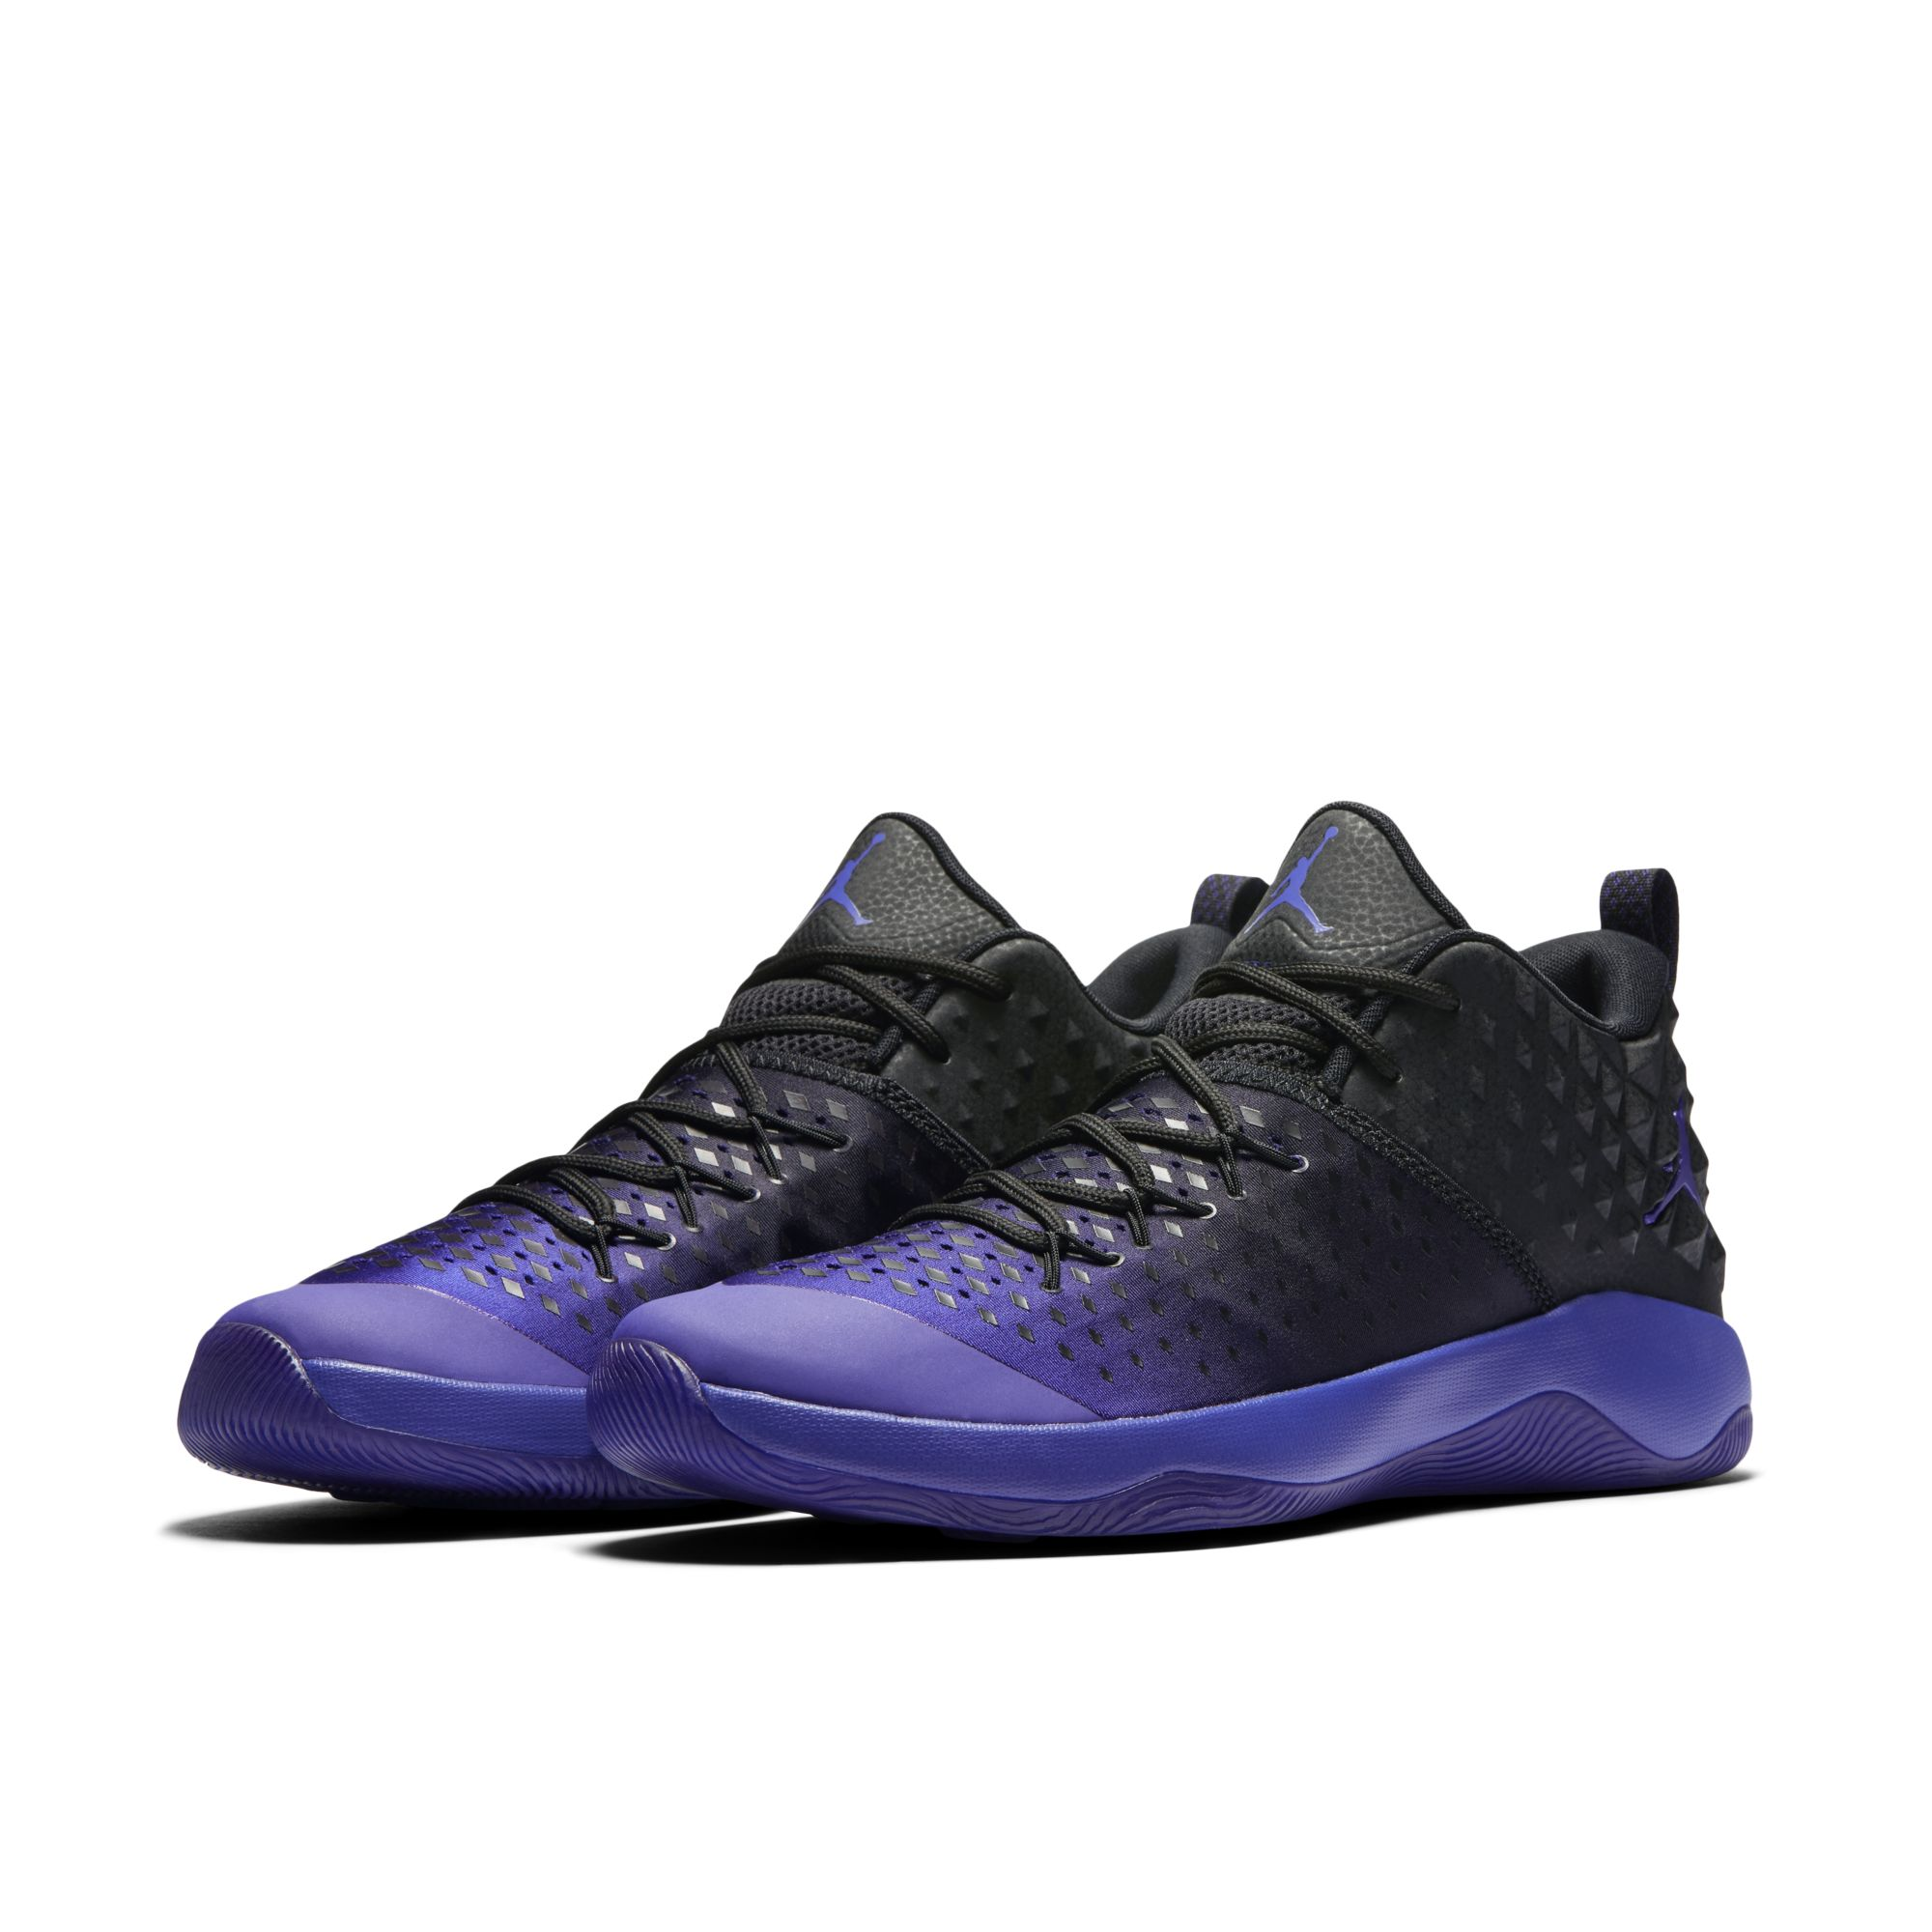 low priced 8adcf 02ce1 Jordan Extra.Fly – Concord